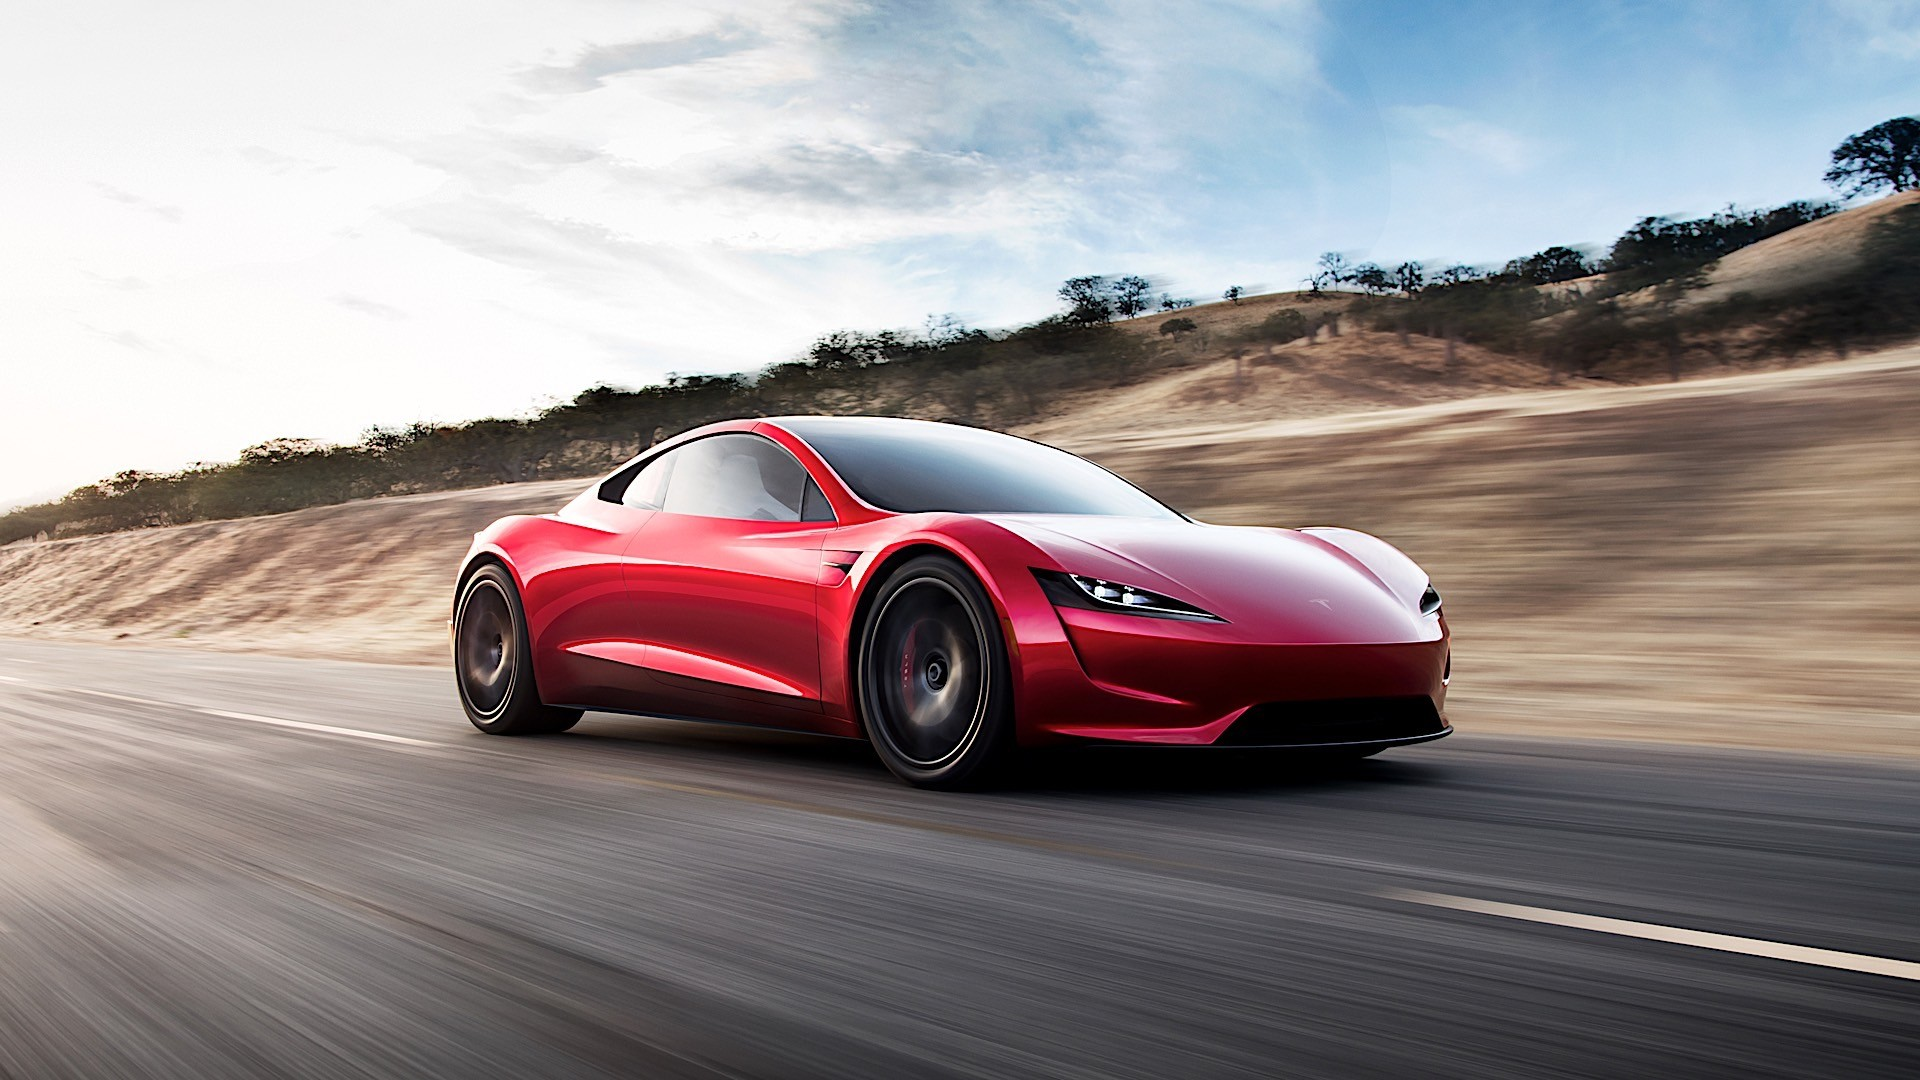 The Tesla Roadster's SpaceX package will replace the back seats with rockets